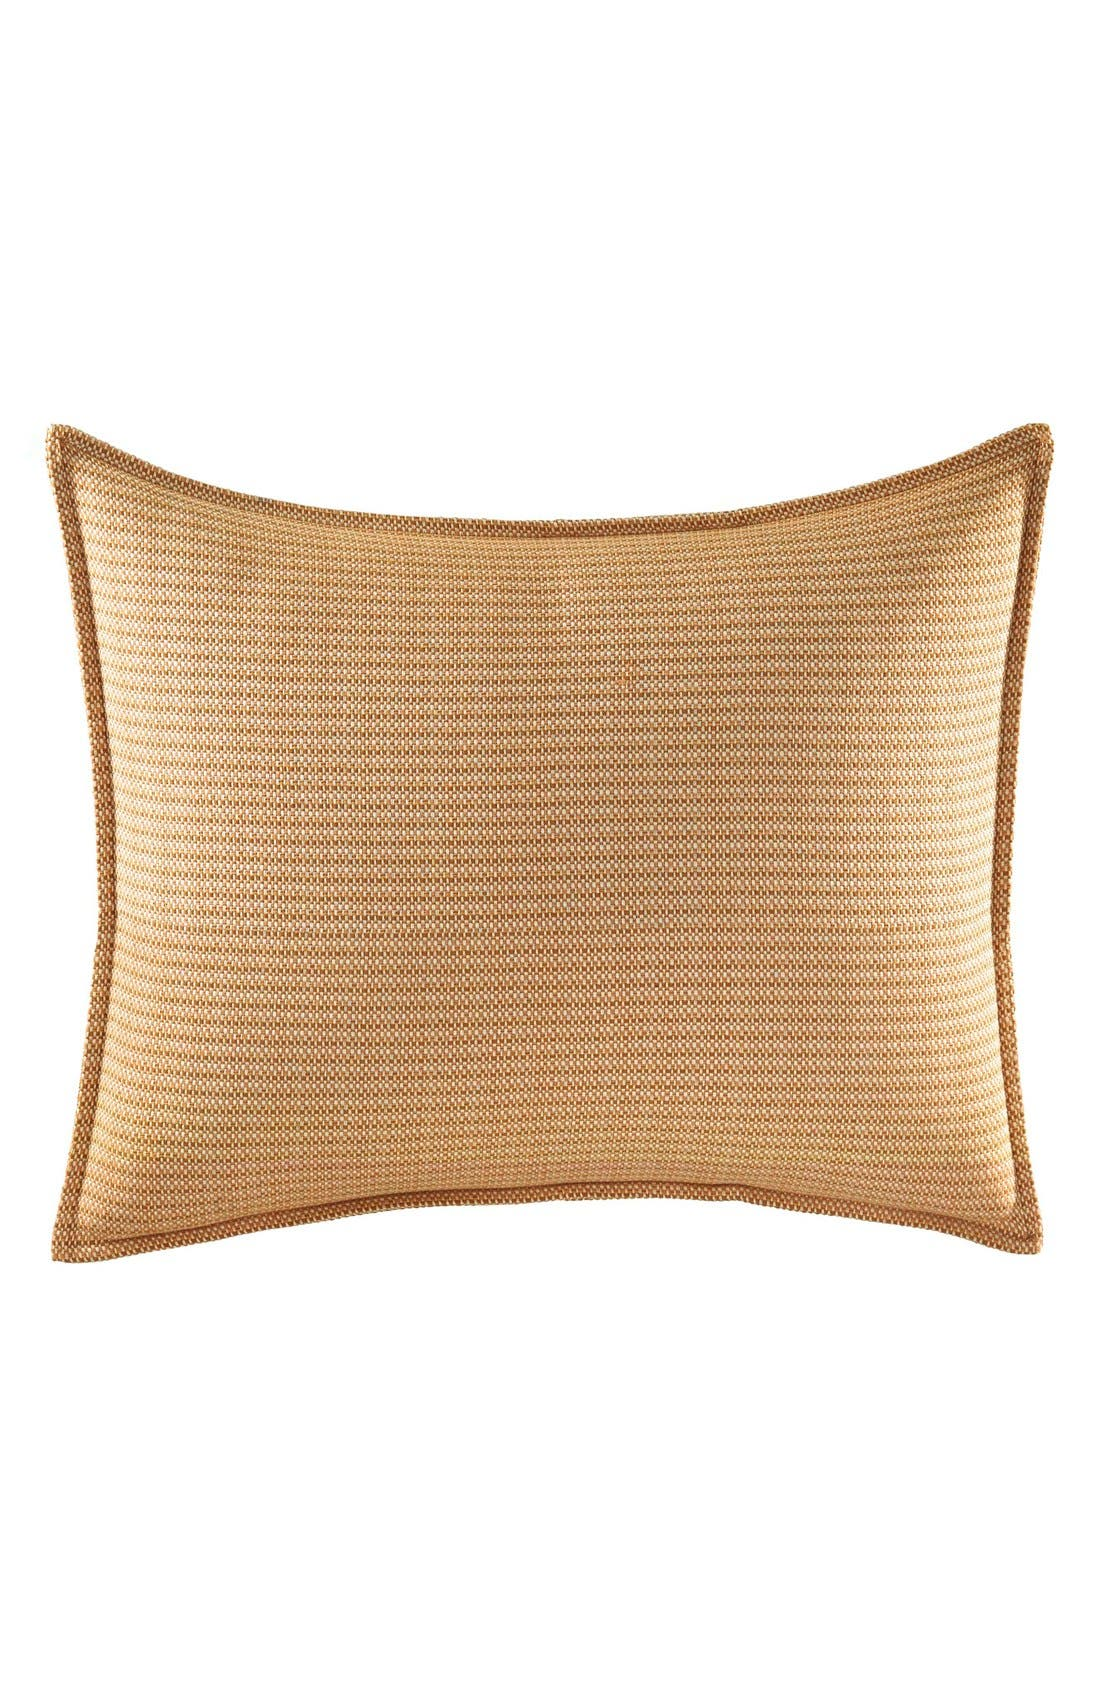 Cayo Coco Pillow,                             Main thumbnail 1, color,                             Rust